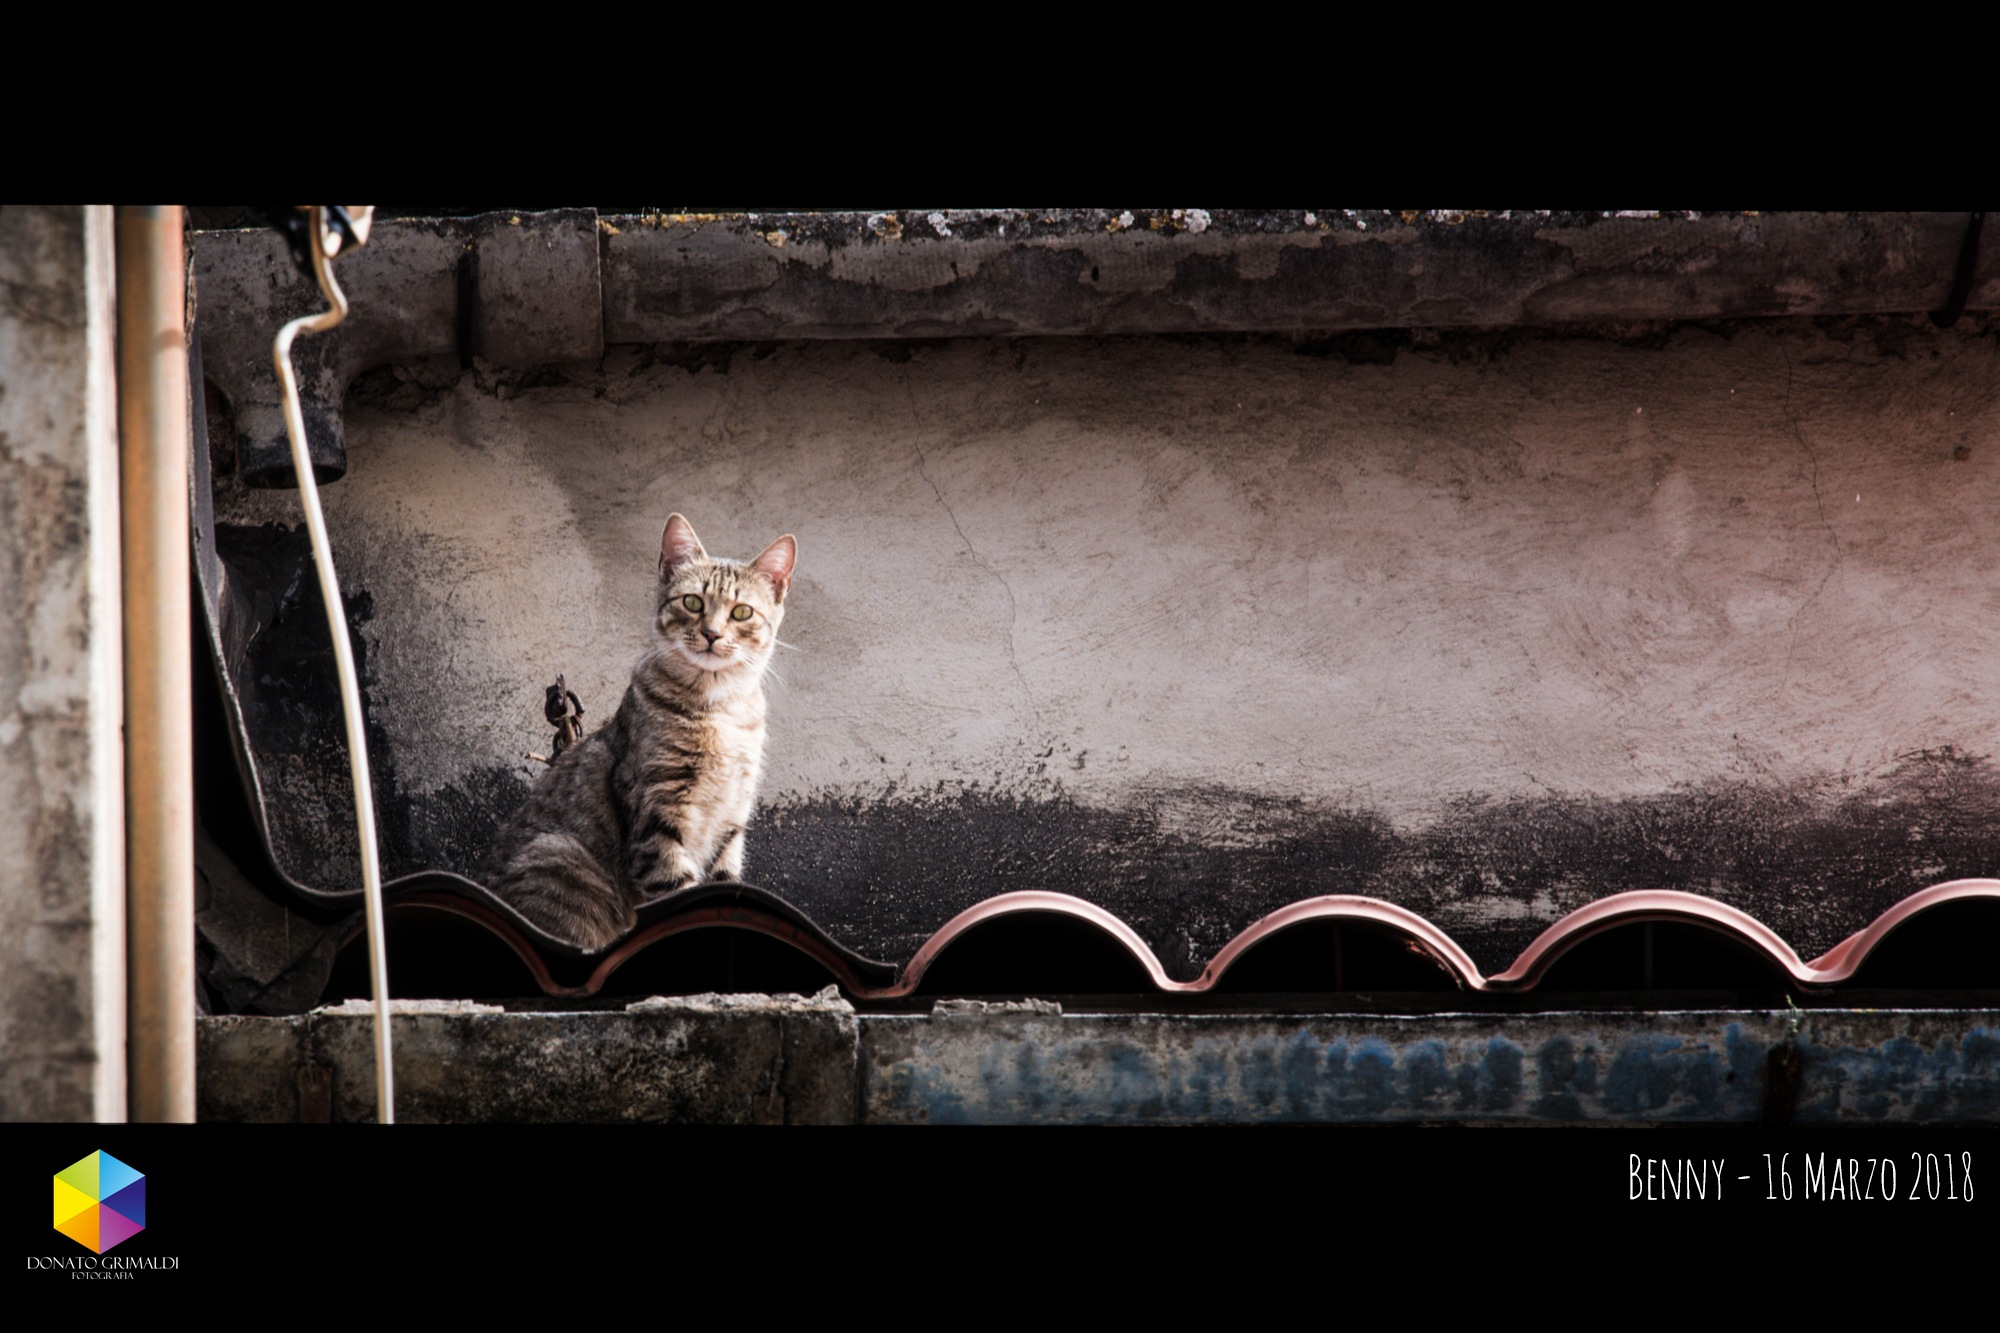 Benny the cat by deegee65